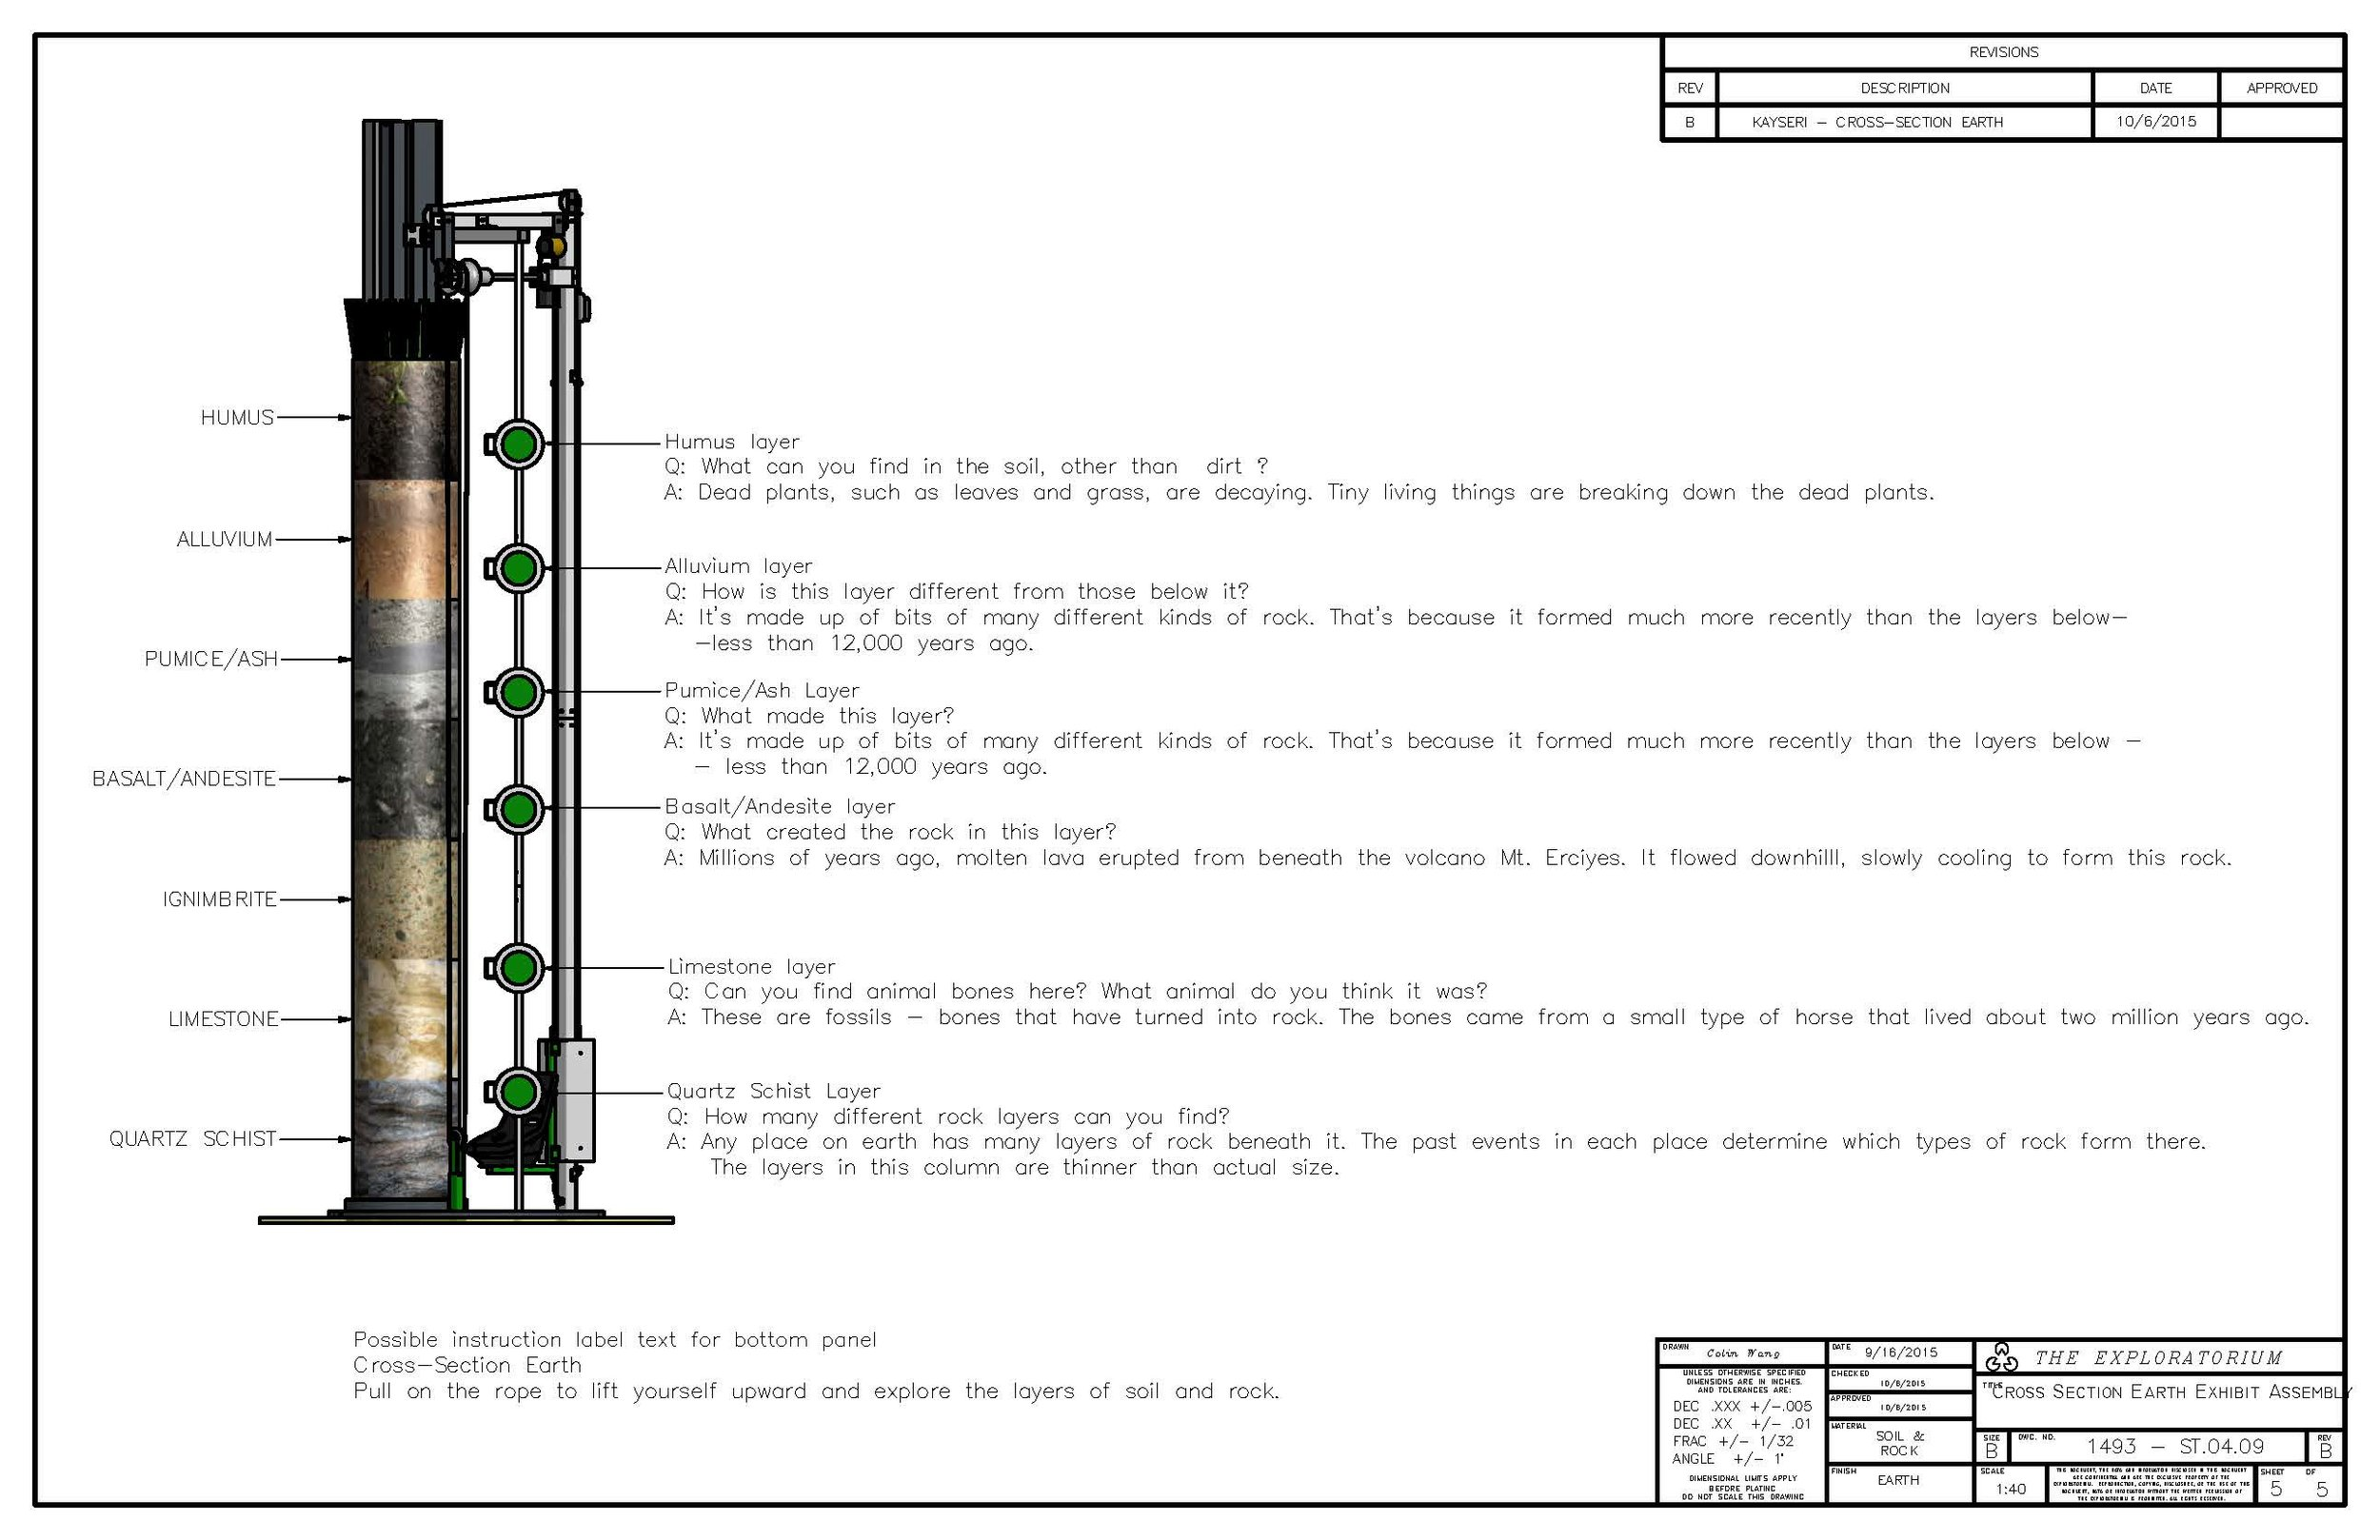 Drawing of the exhibit as designed by the Exploratorium with soil layers called out